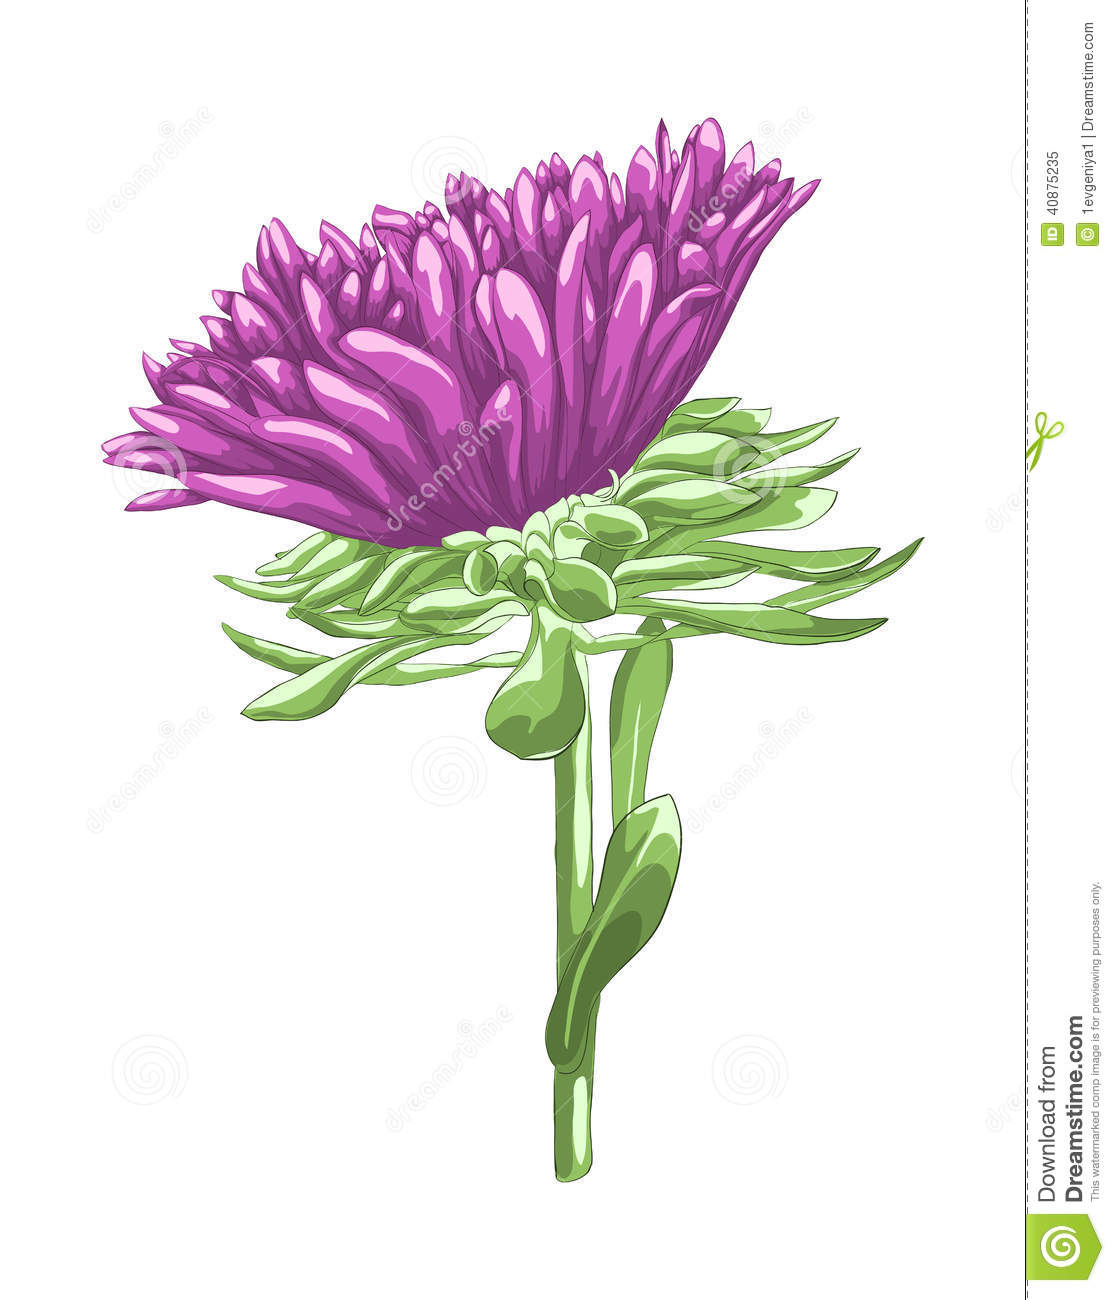 Aster Flower Line Drawing : Beautiful purple aster isolated on white background stock